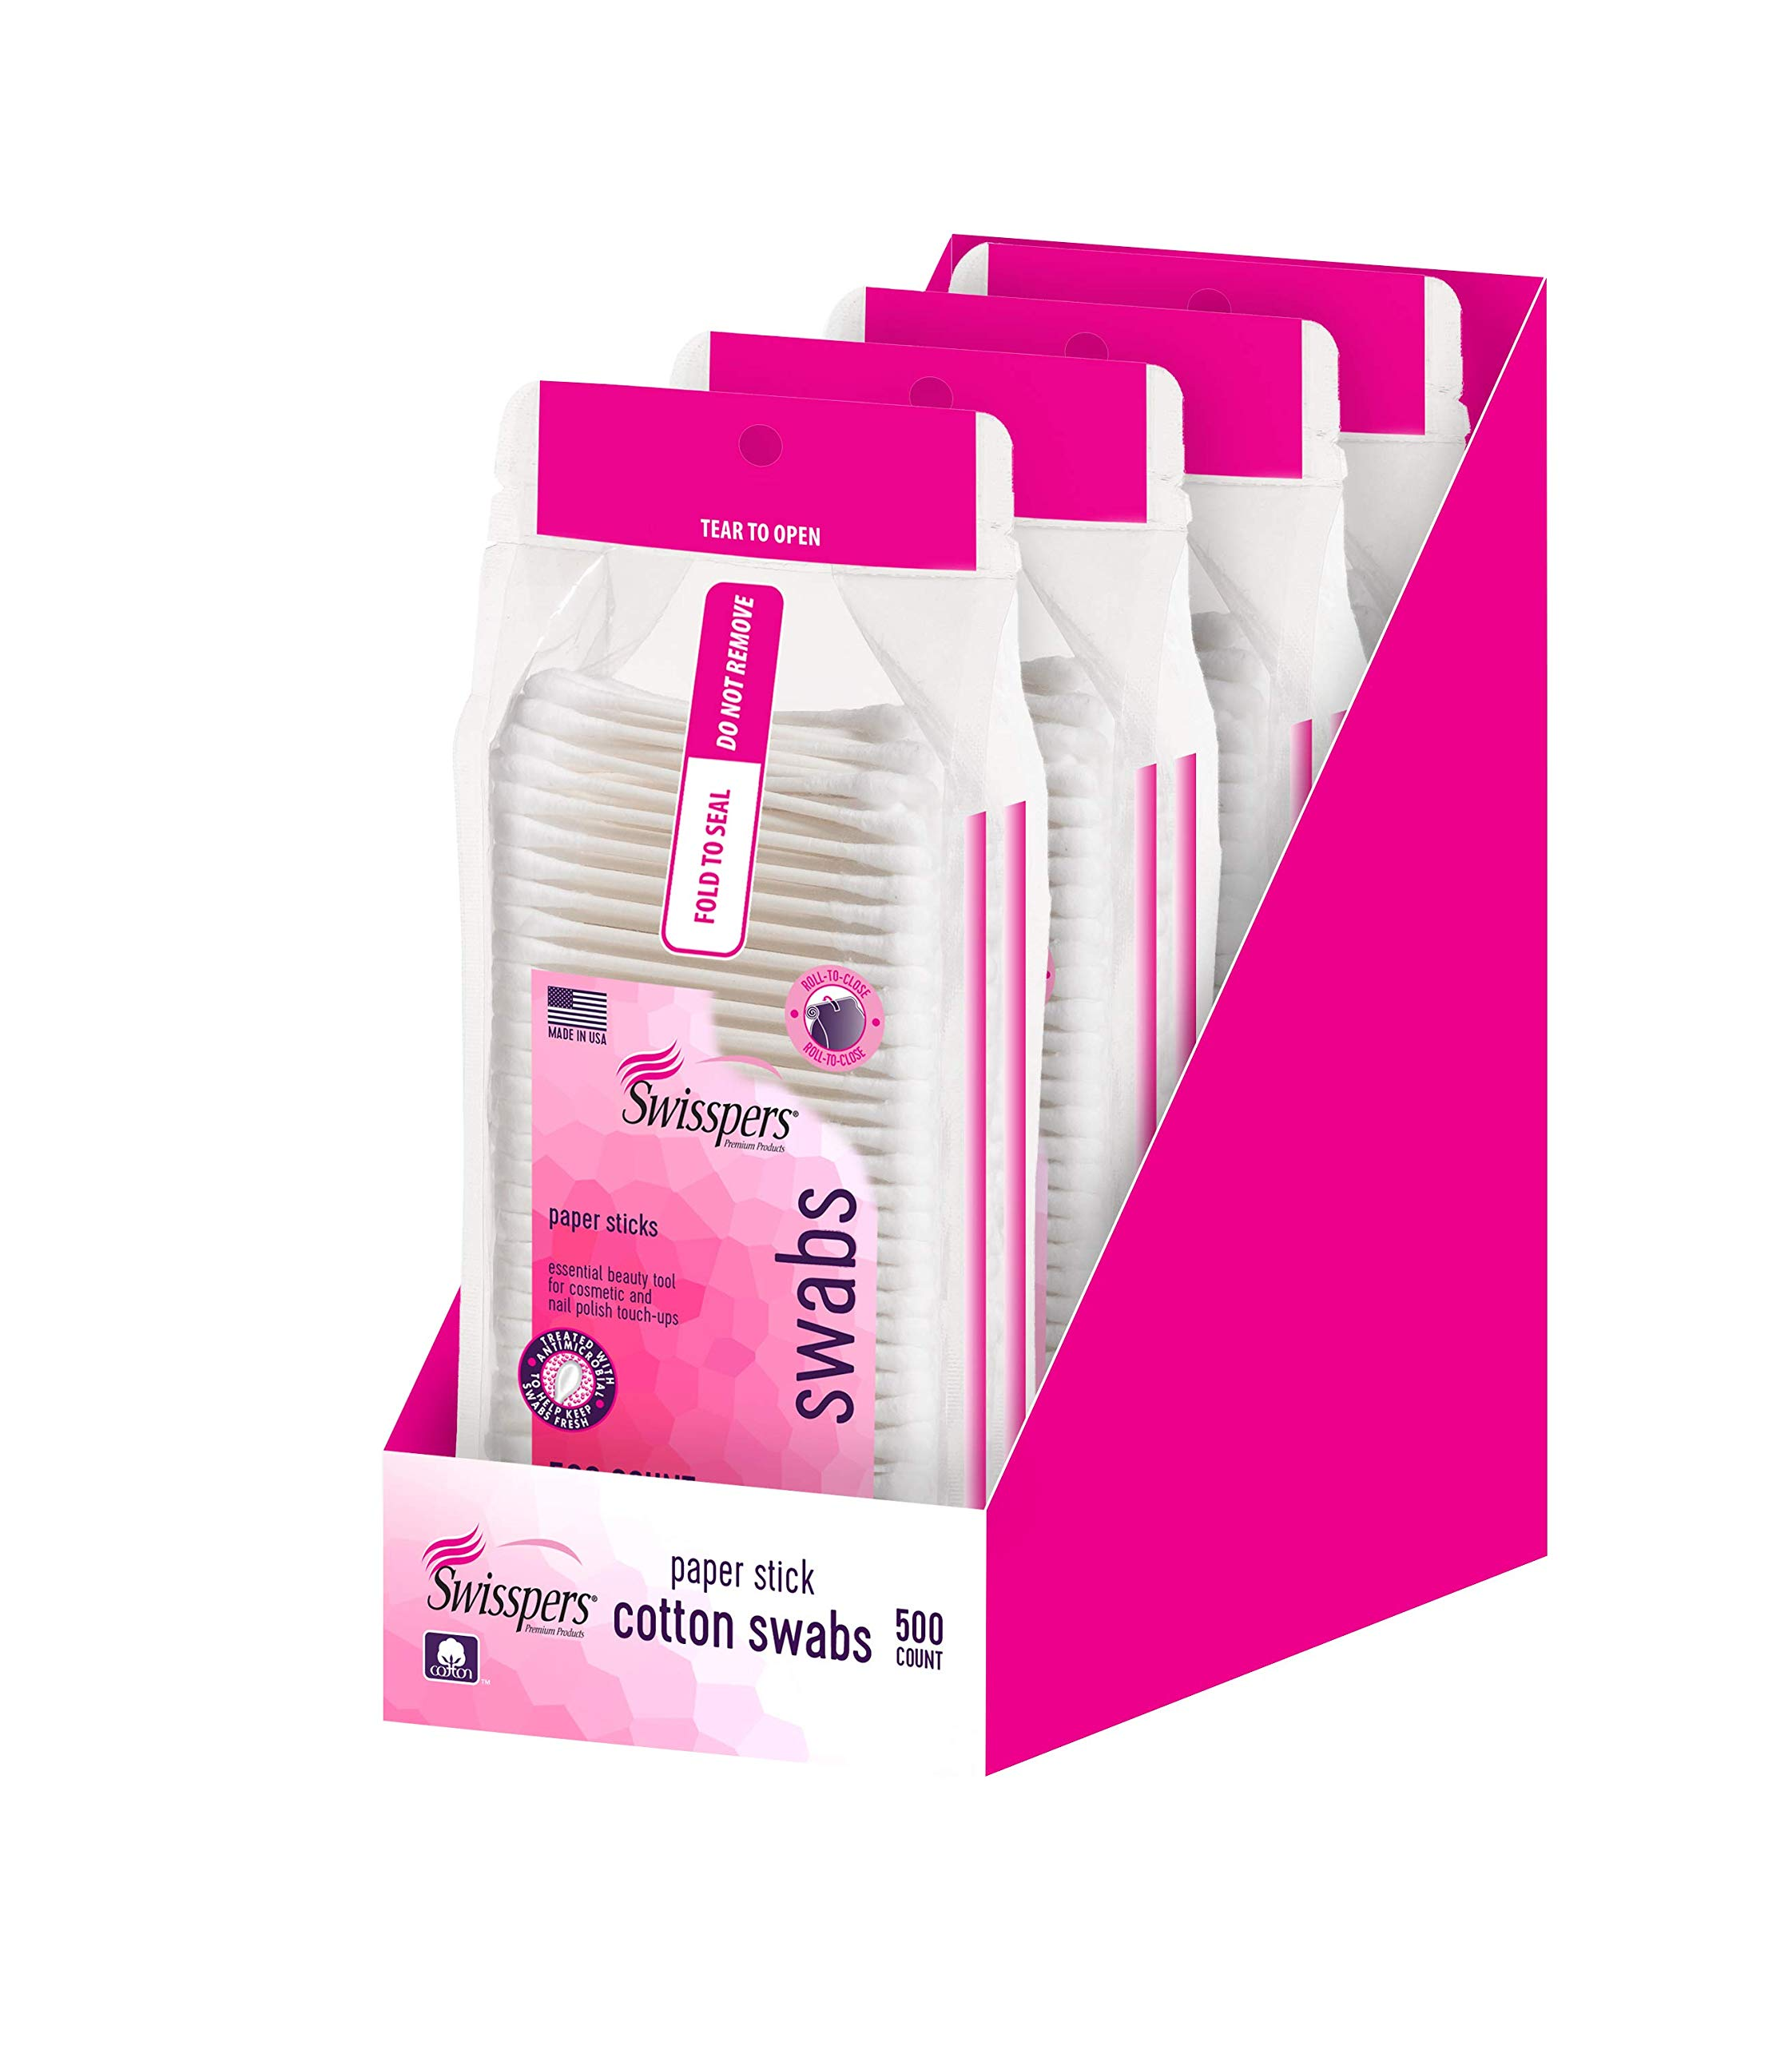 Swisspers Premium Cotton Swabs, 100% Pure Cotton Tips, White Paper Stick Swabs, Re-Closable Pouch, 500-Count Packs, 4 Packs (2000 Swabs Total)